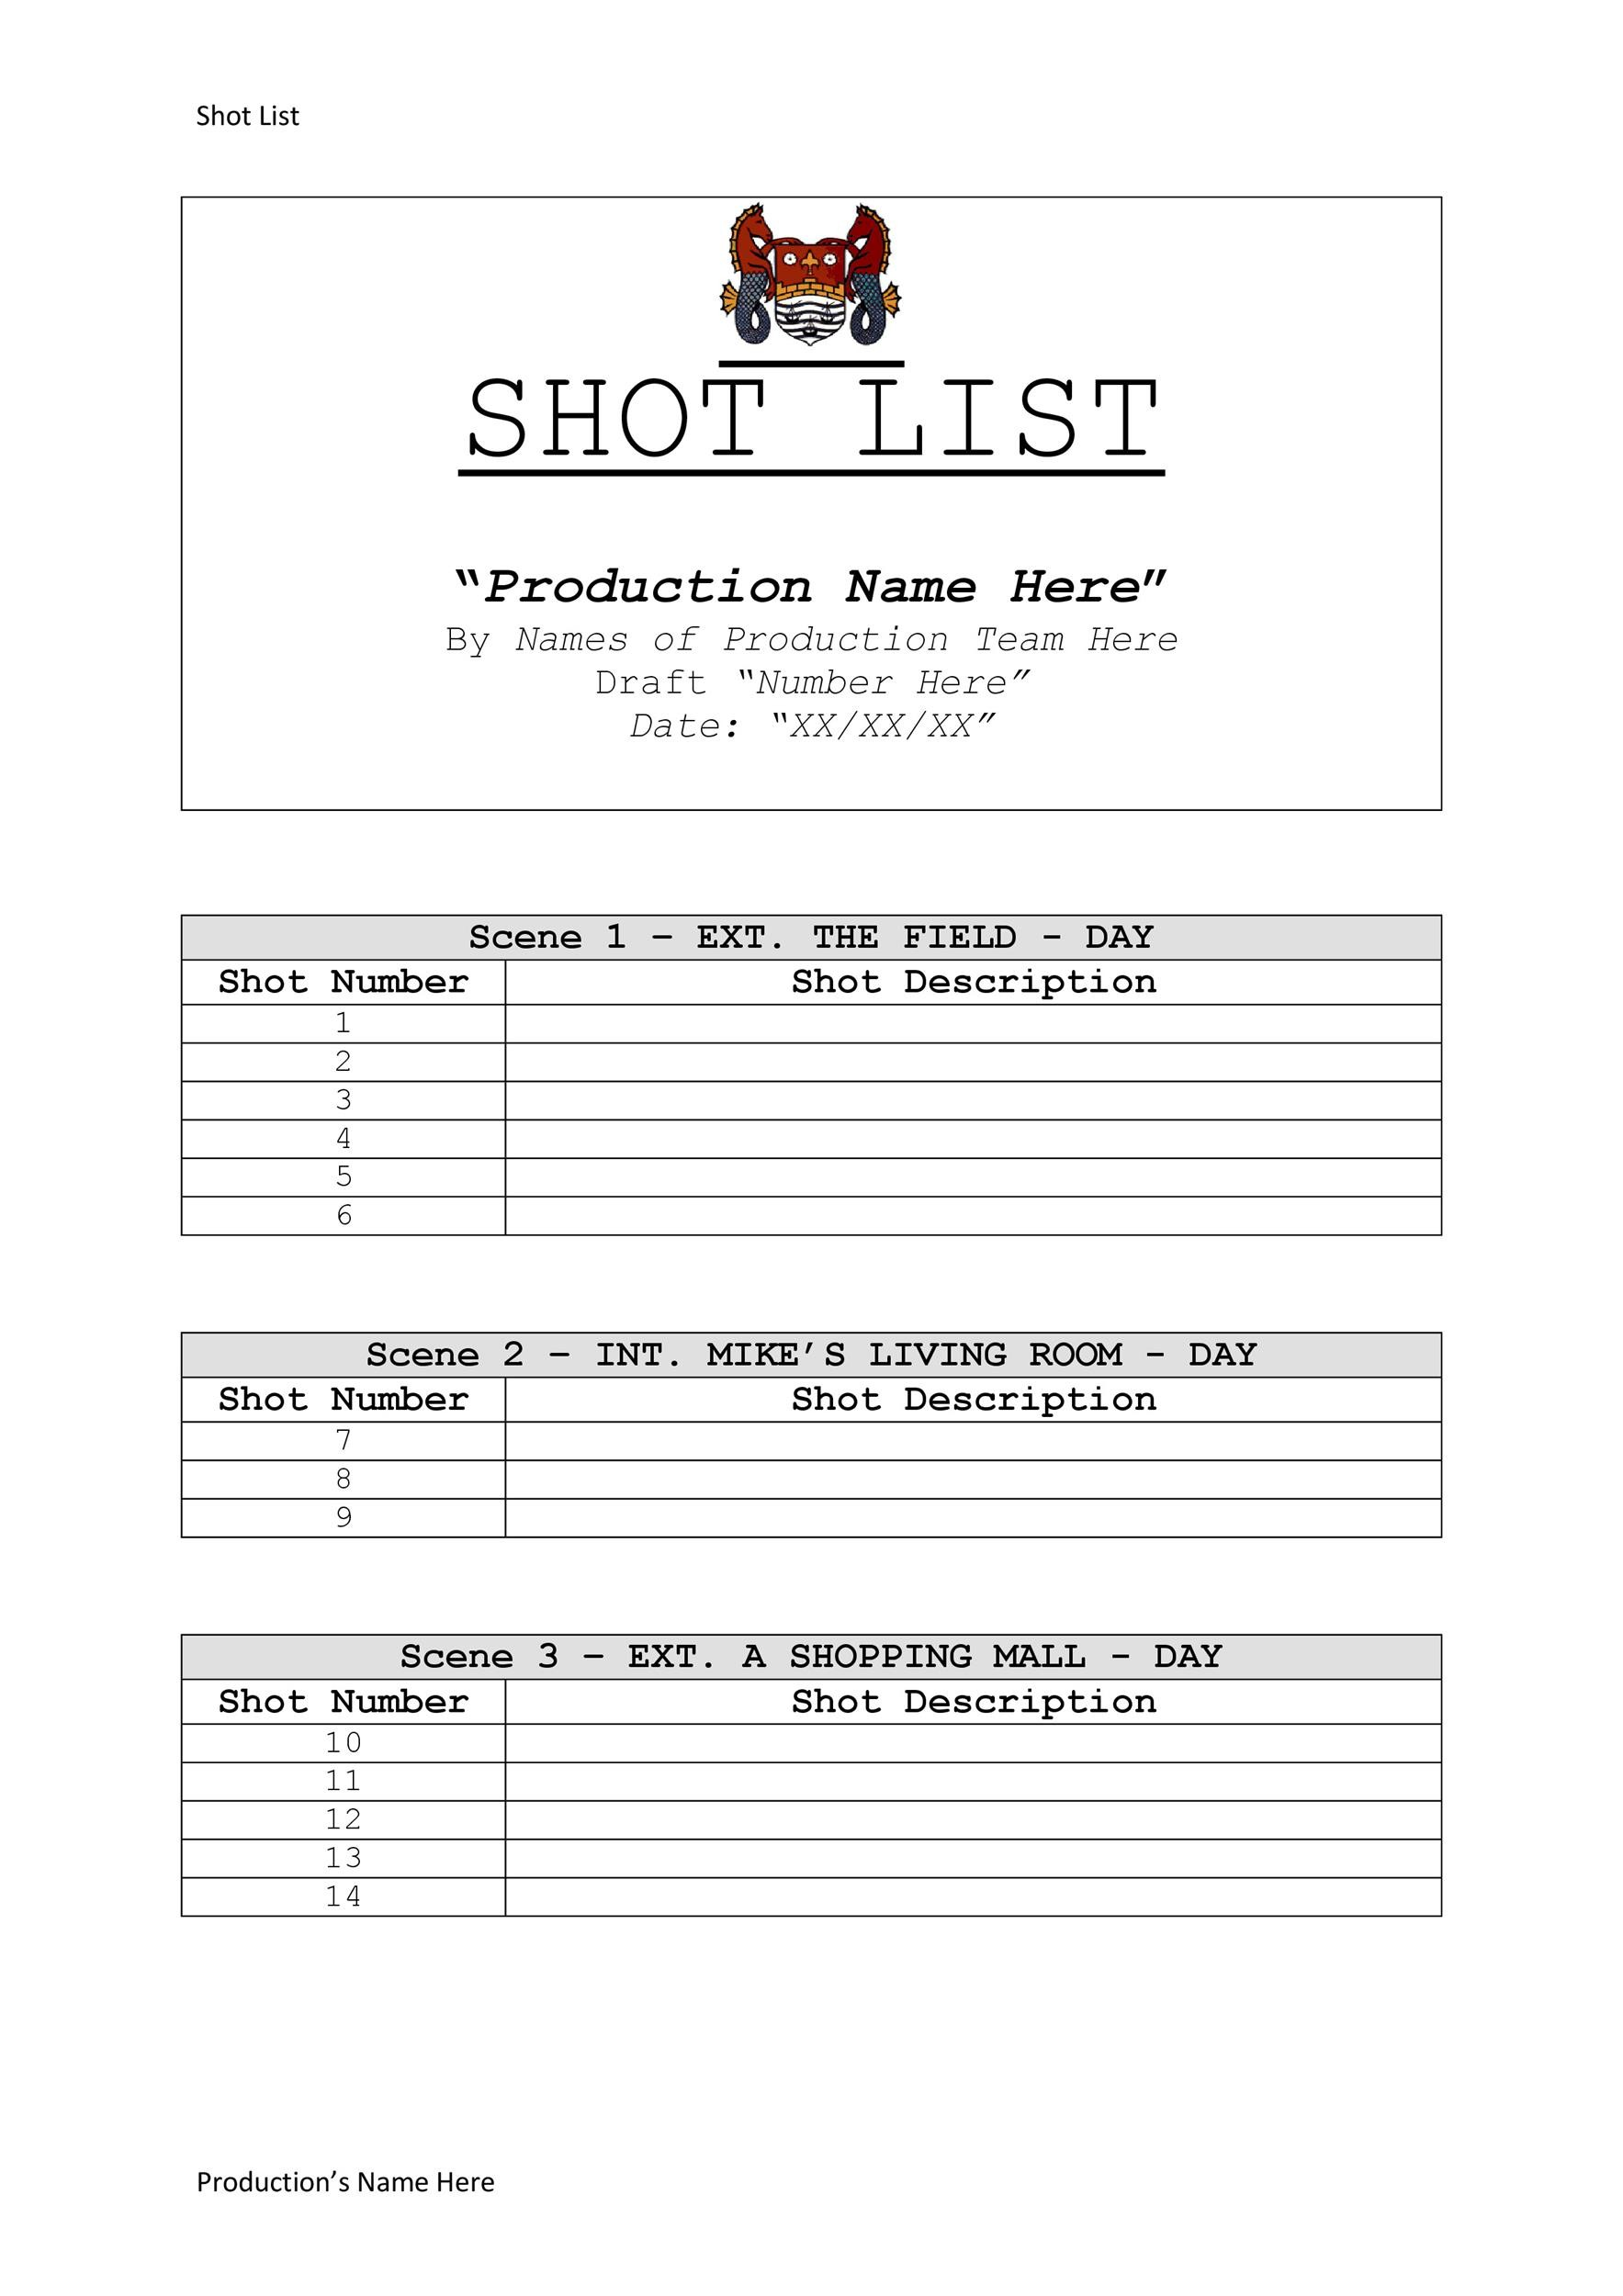 Free shot list template 27